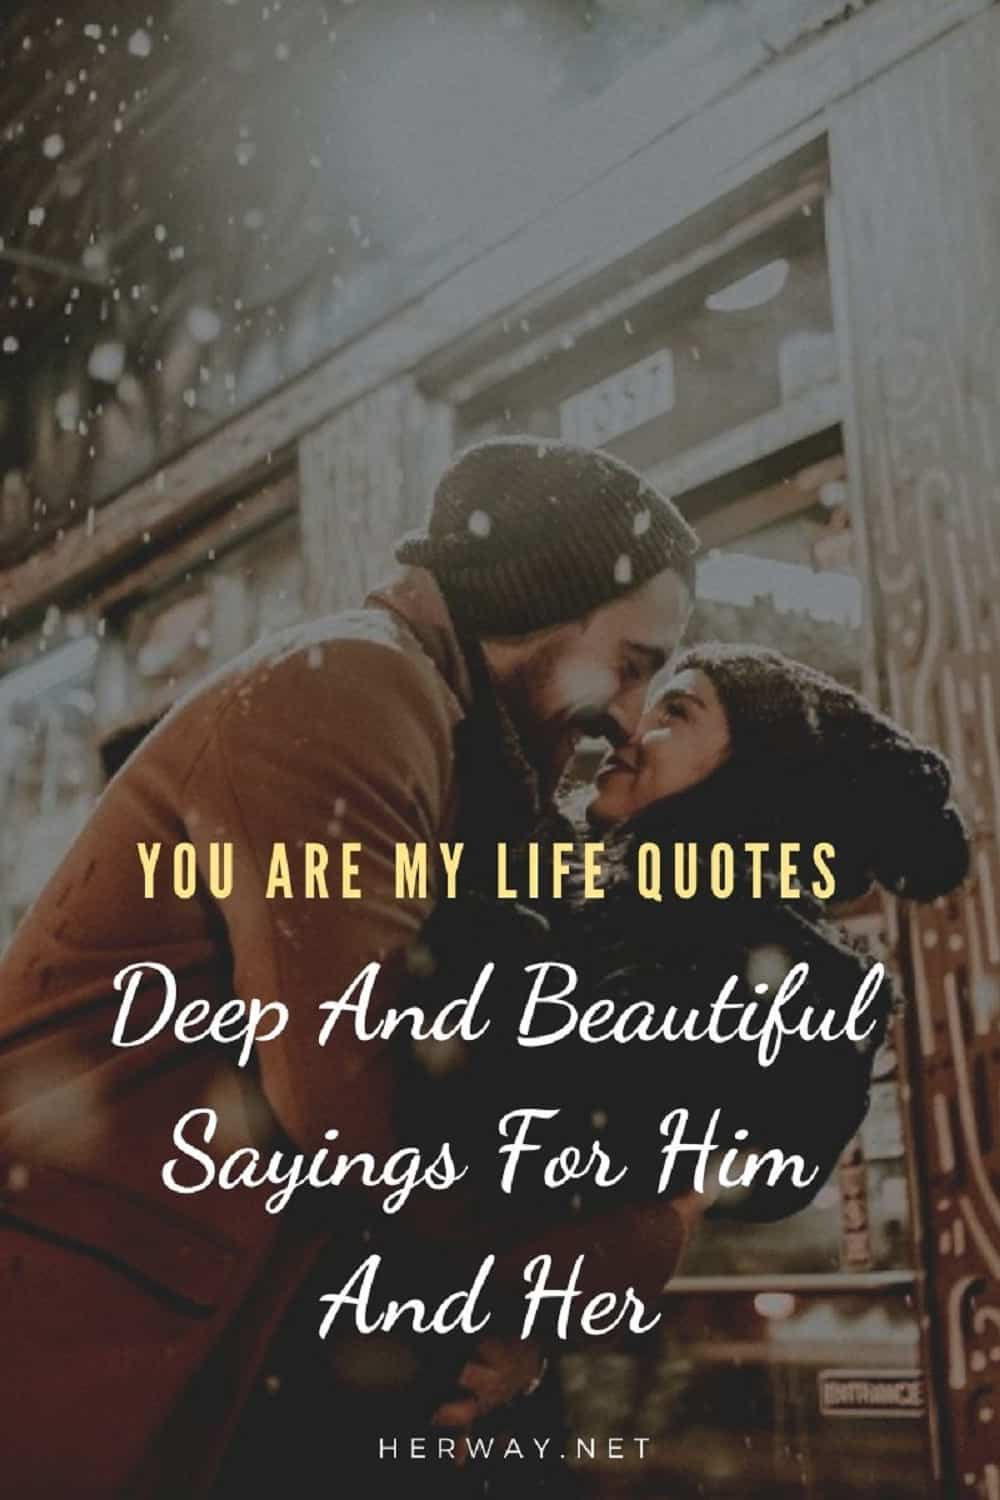 You Are My Life Quotes: Deep And Beautiful Sayings For Him And Her Pinterest